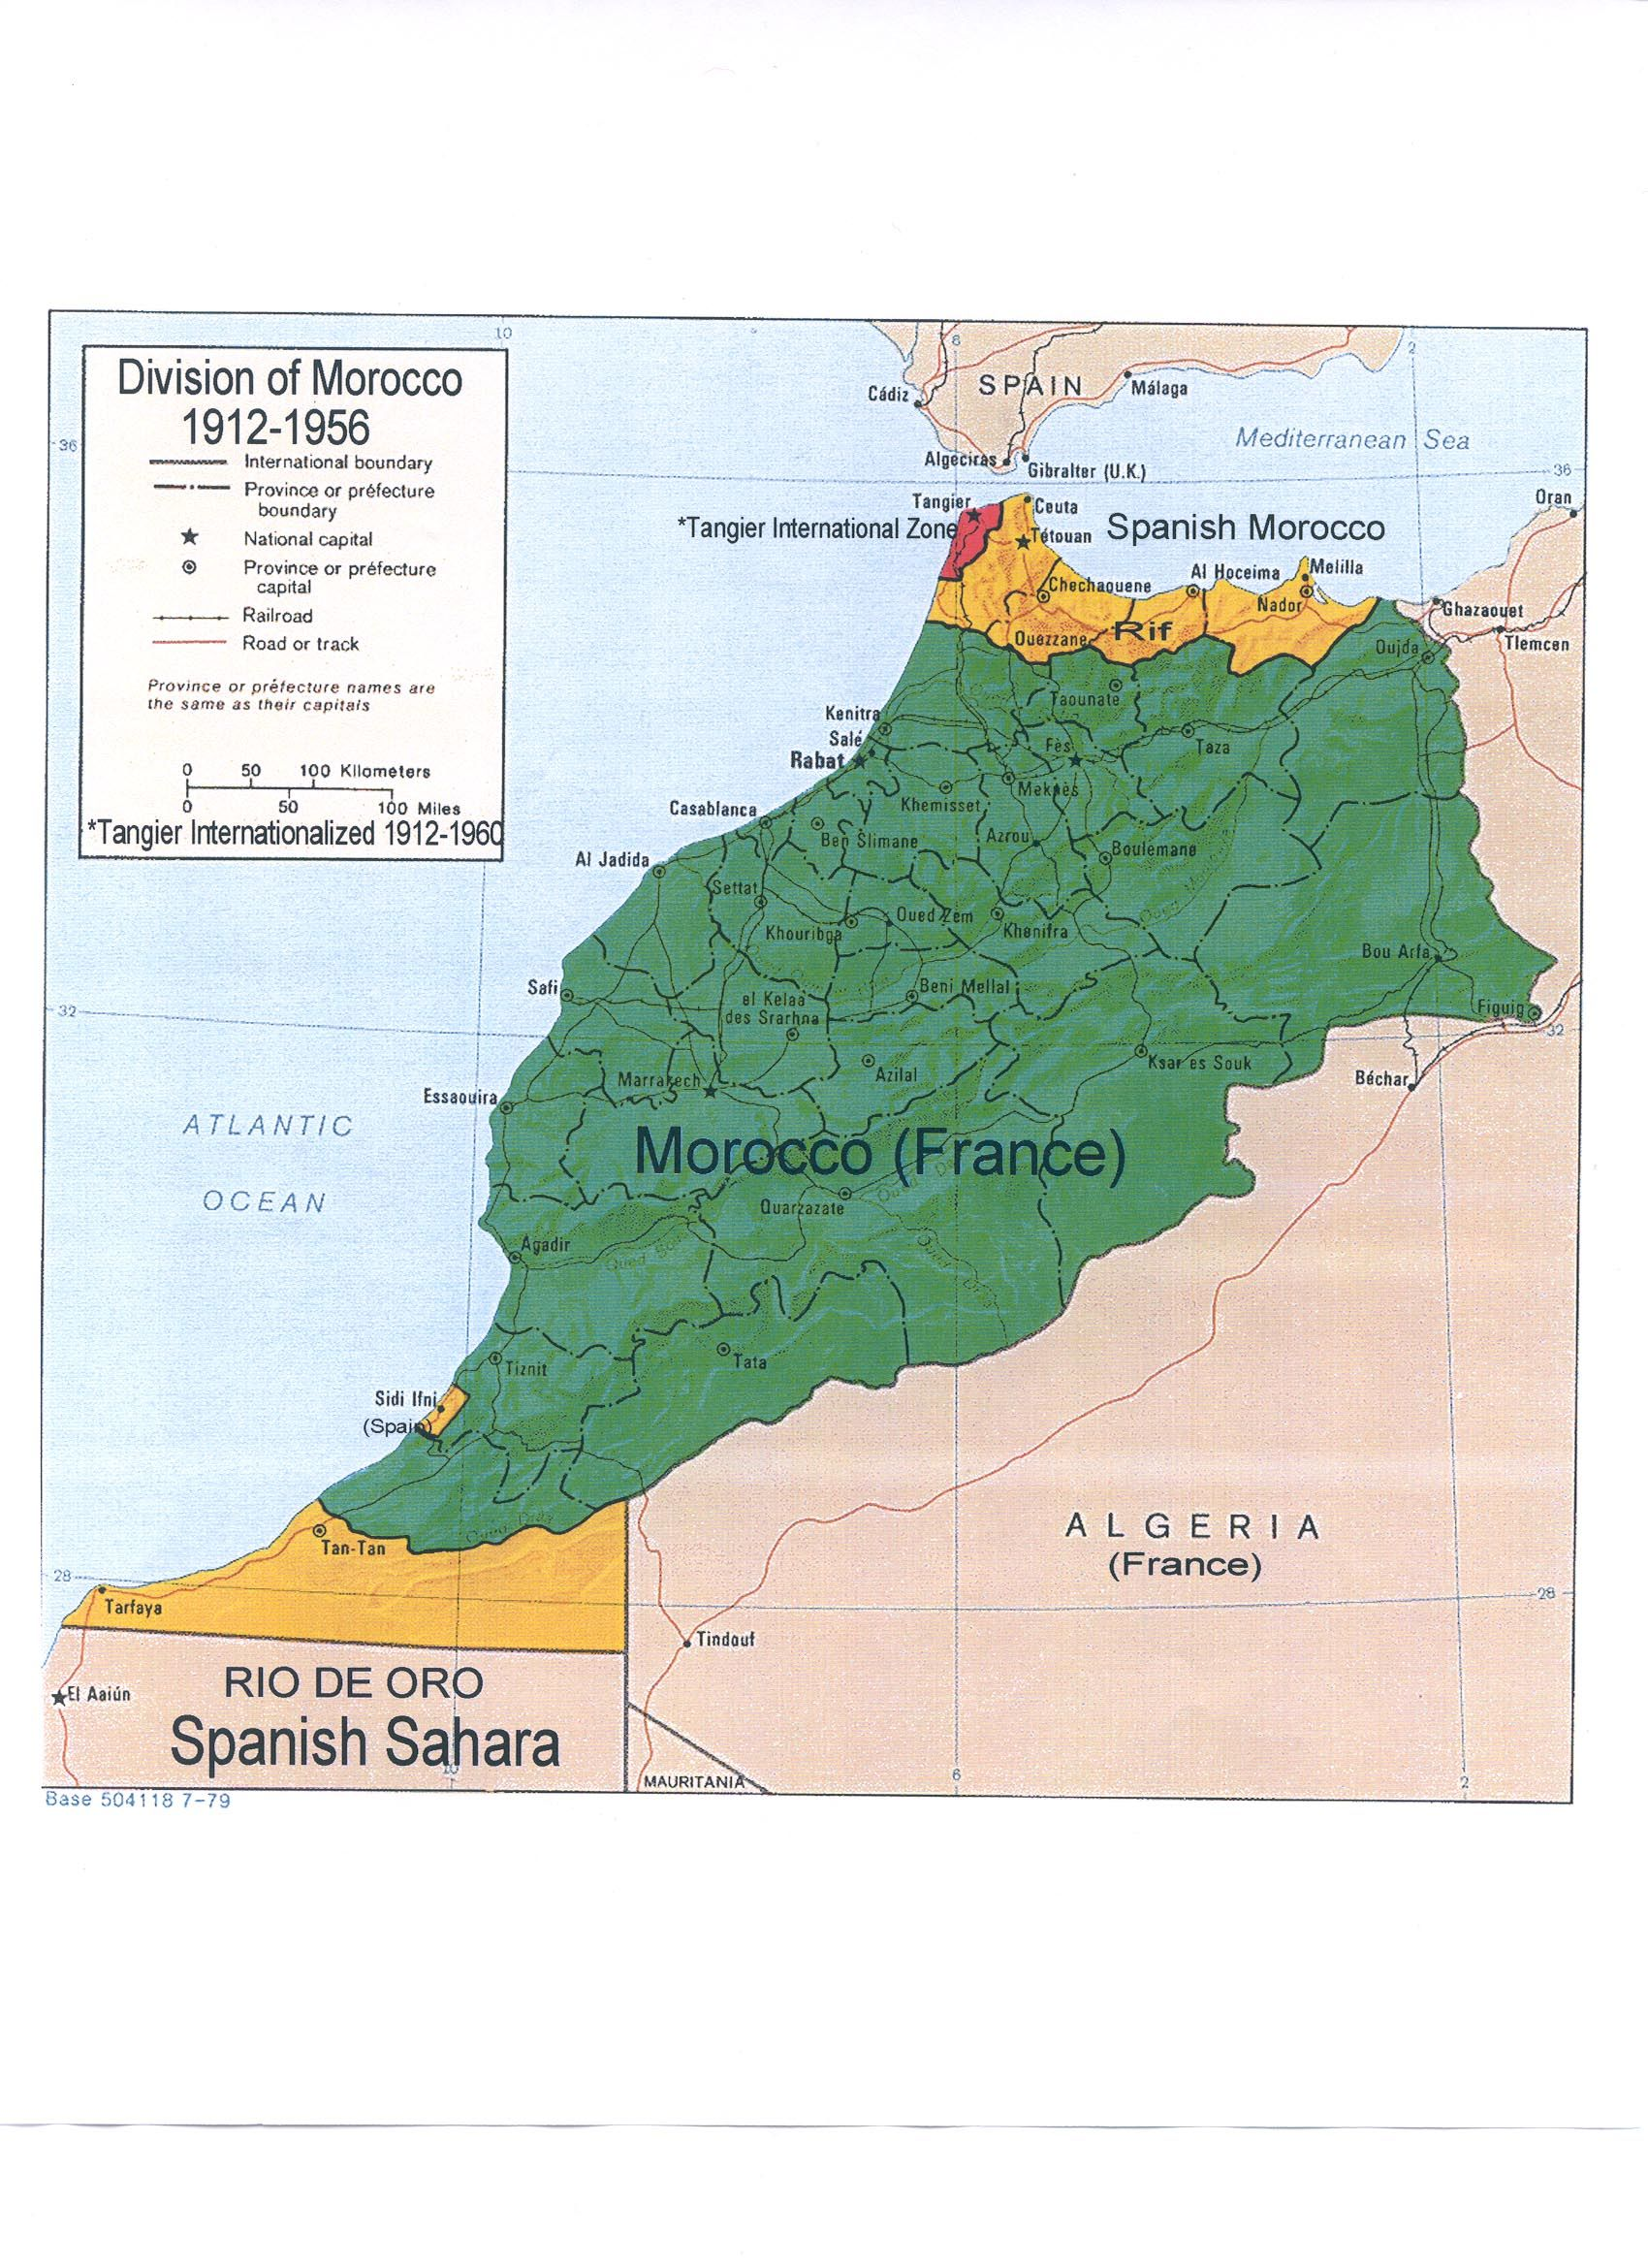 Map Colonial Morocco  Map  Pinterest  Morocco and History